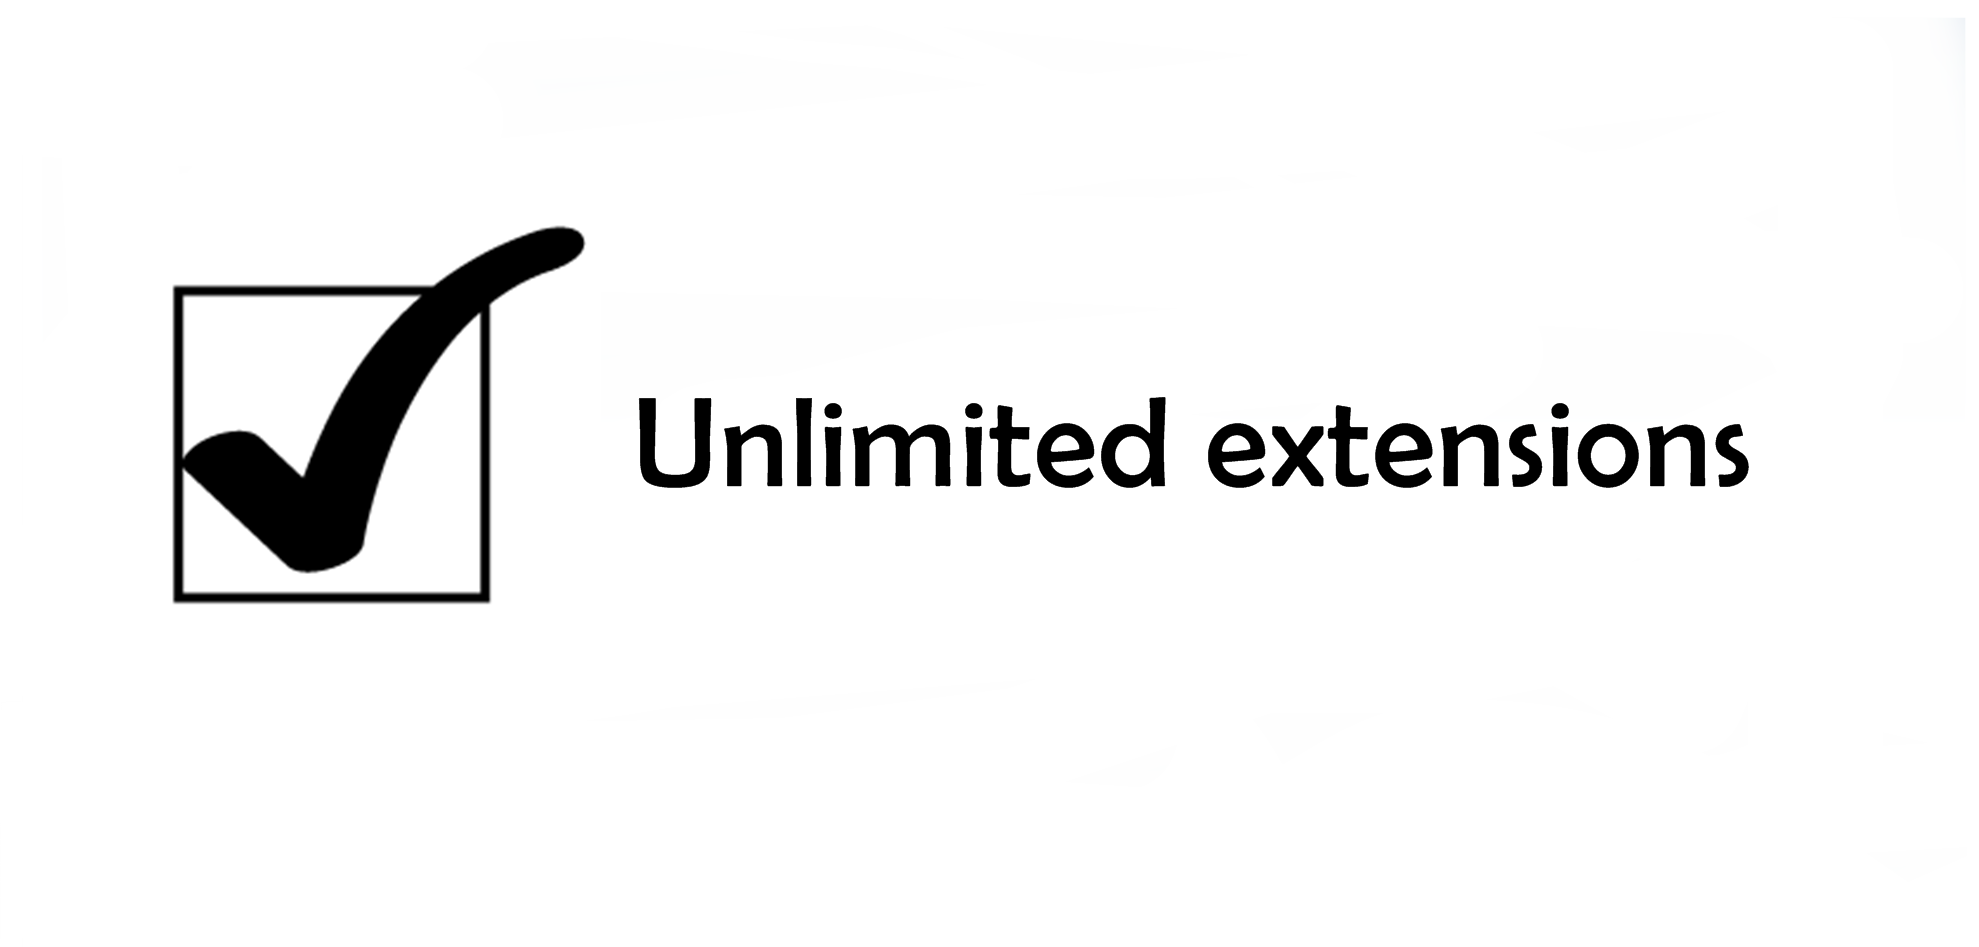 Unlimited extensions